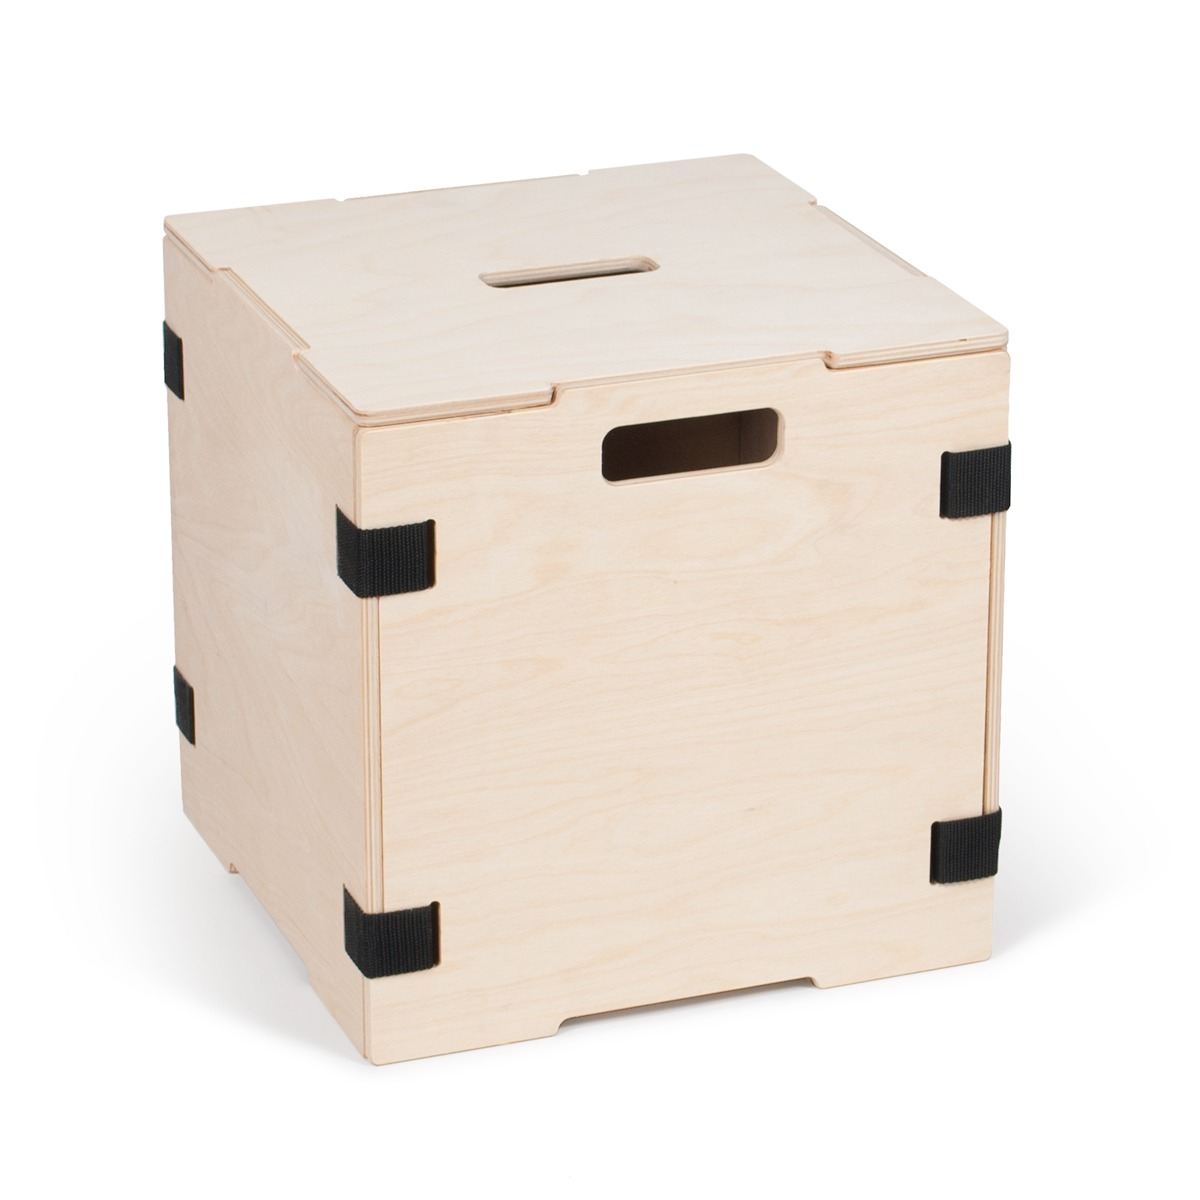 Superior Stackable Wood Cube Storage Boxes   Black  1 Box With Lid